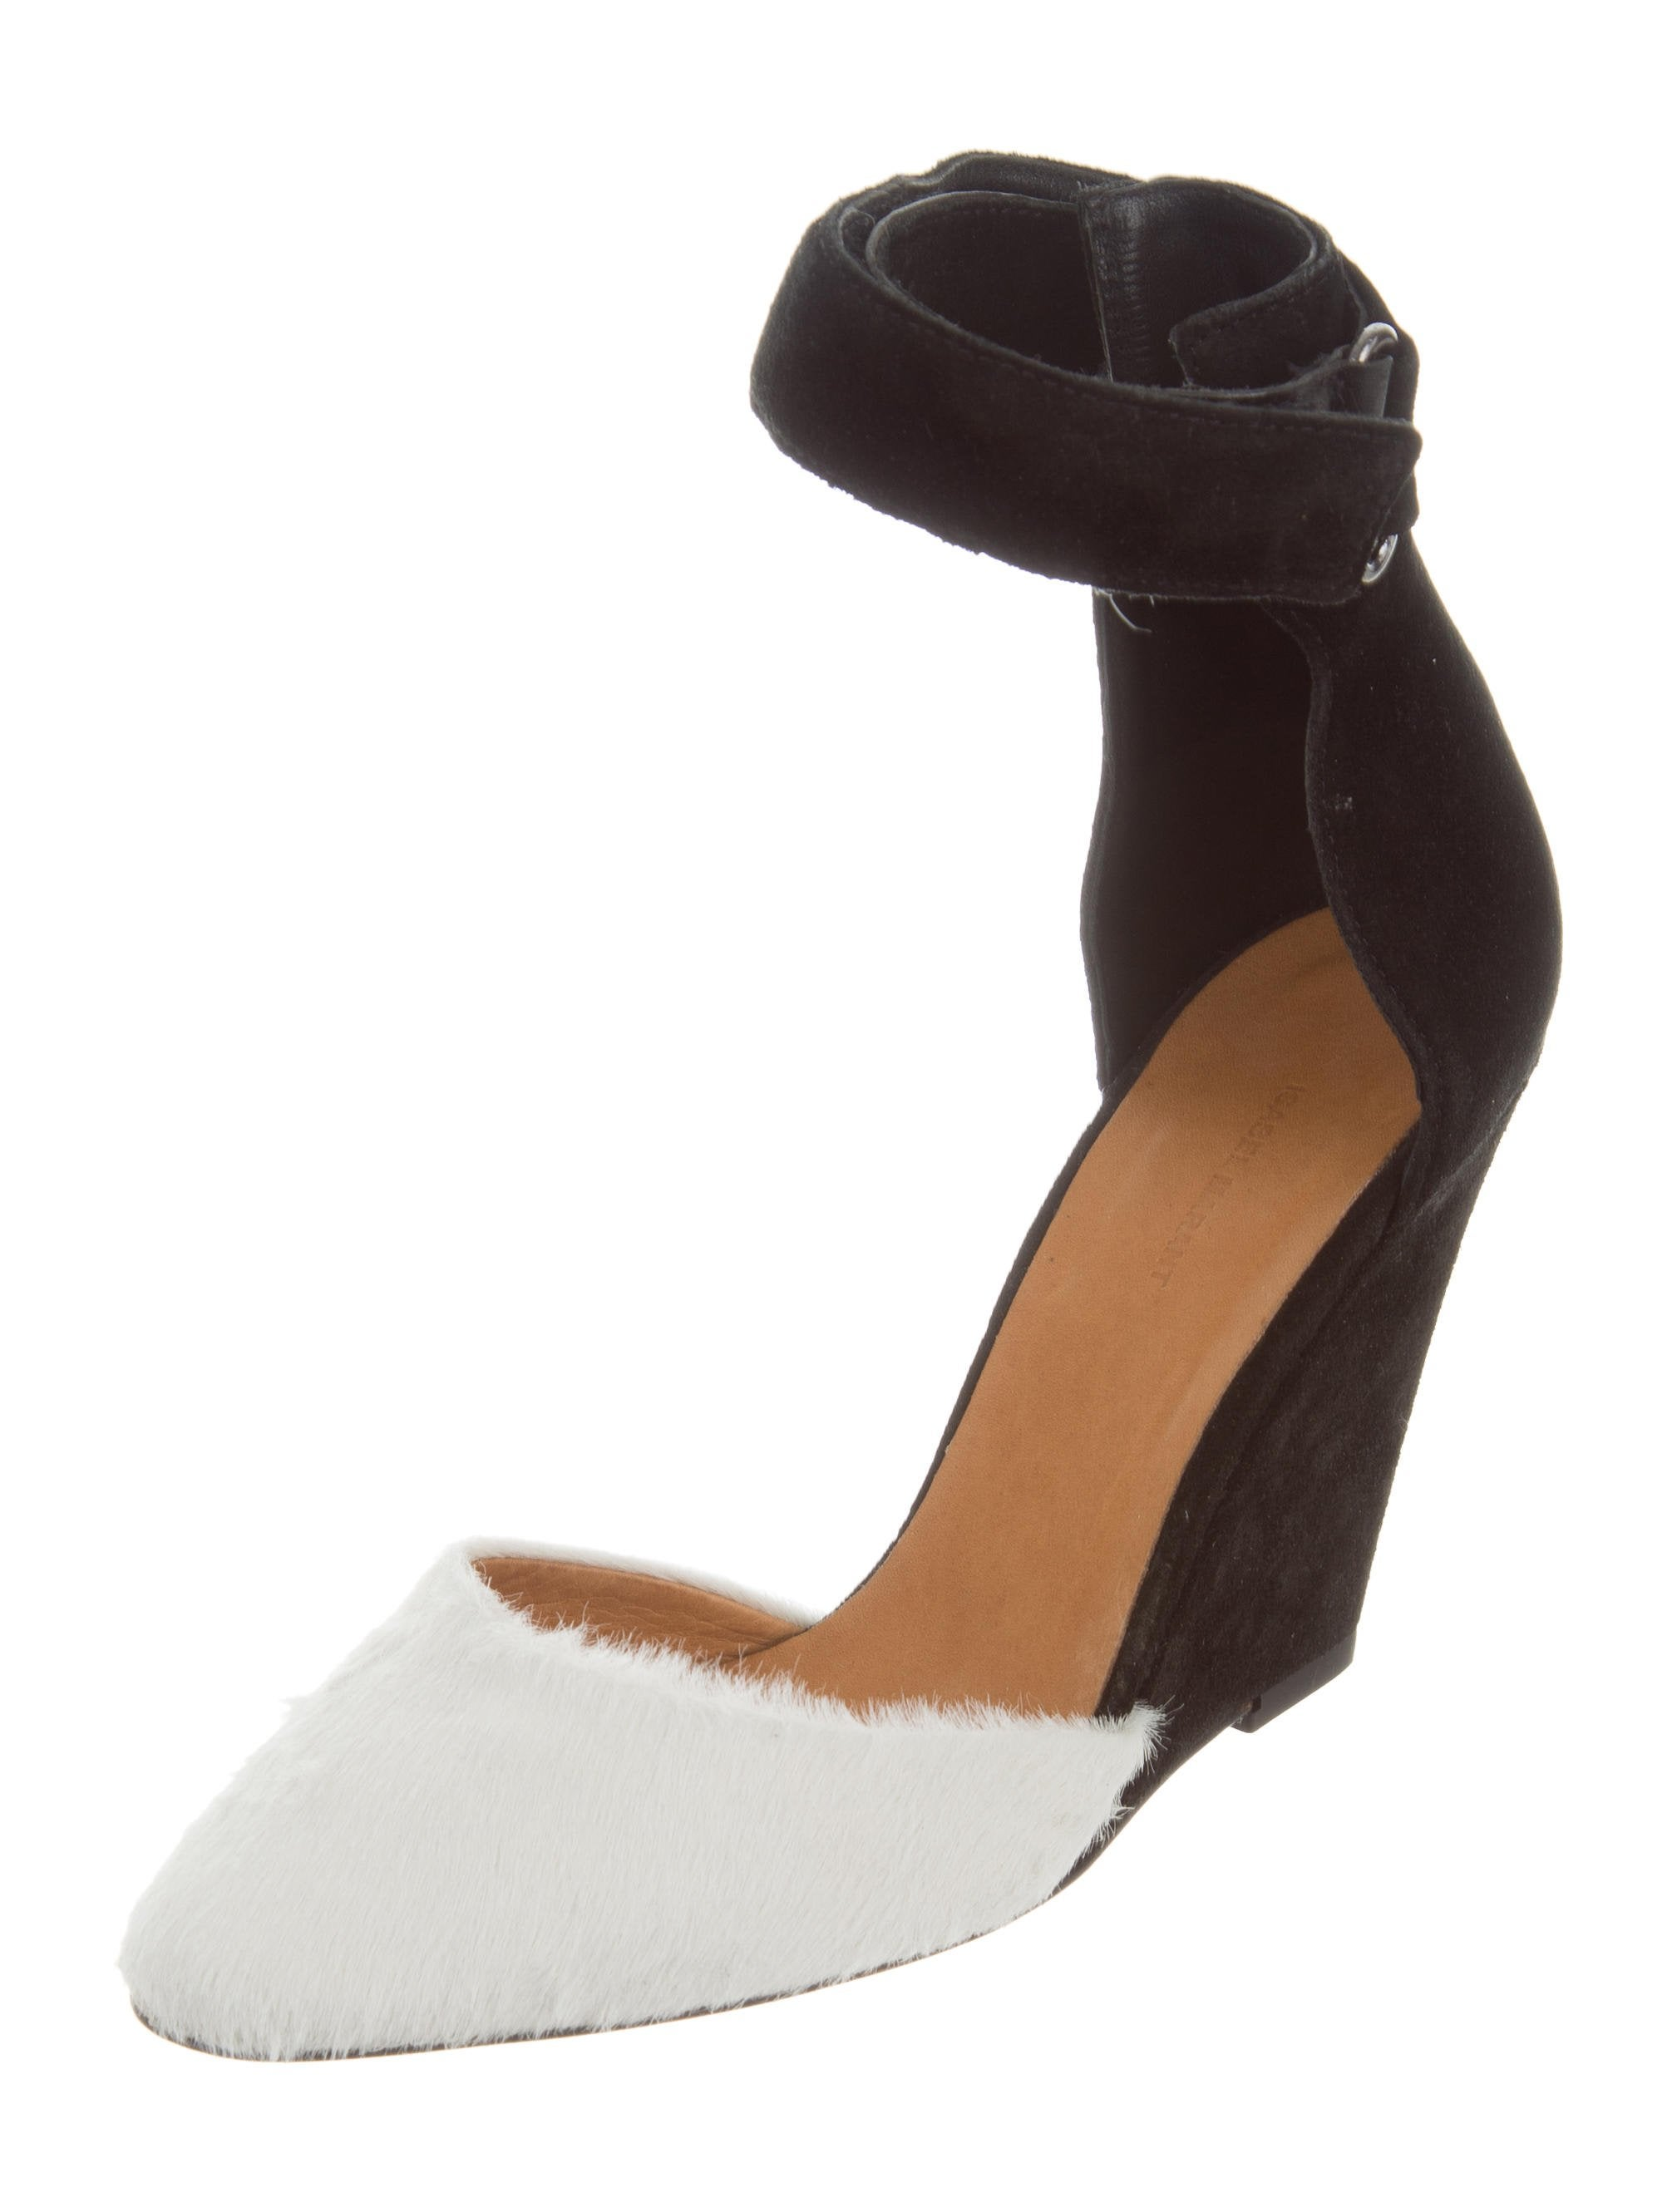 cheap sale outlet store new arrival for sale Isabel Marant Ponyhair Shane Wedges Hv1IK